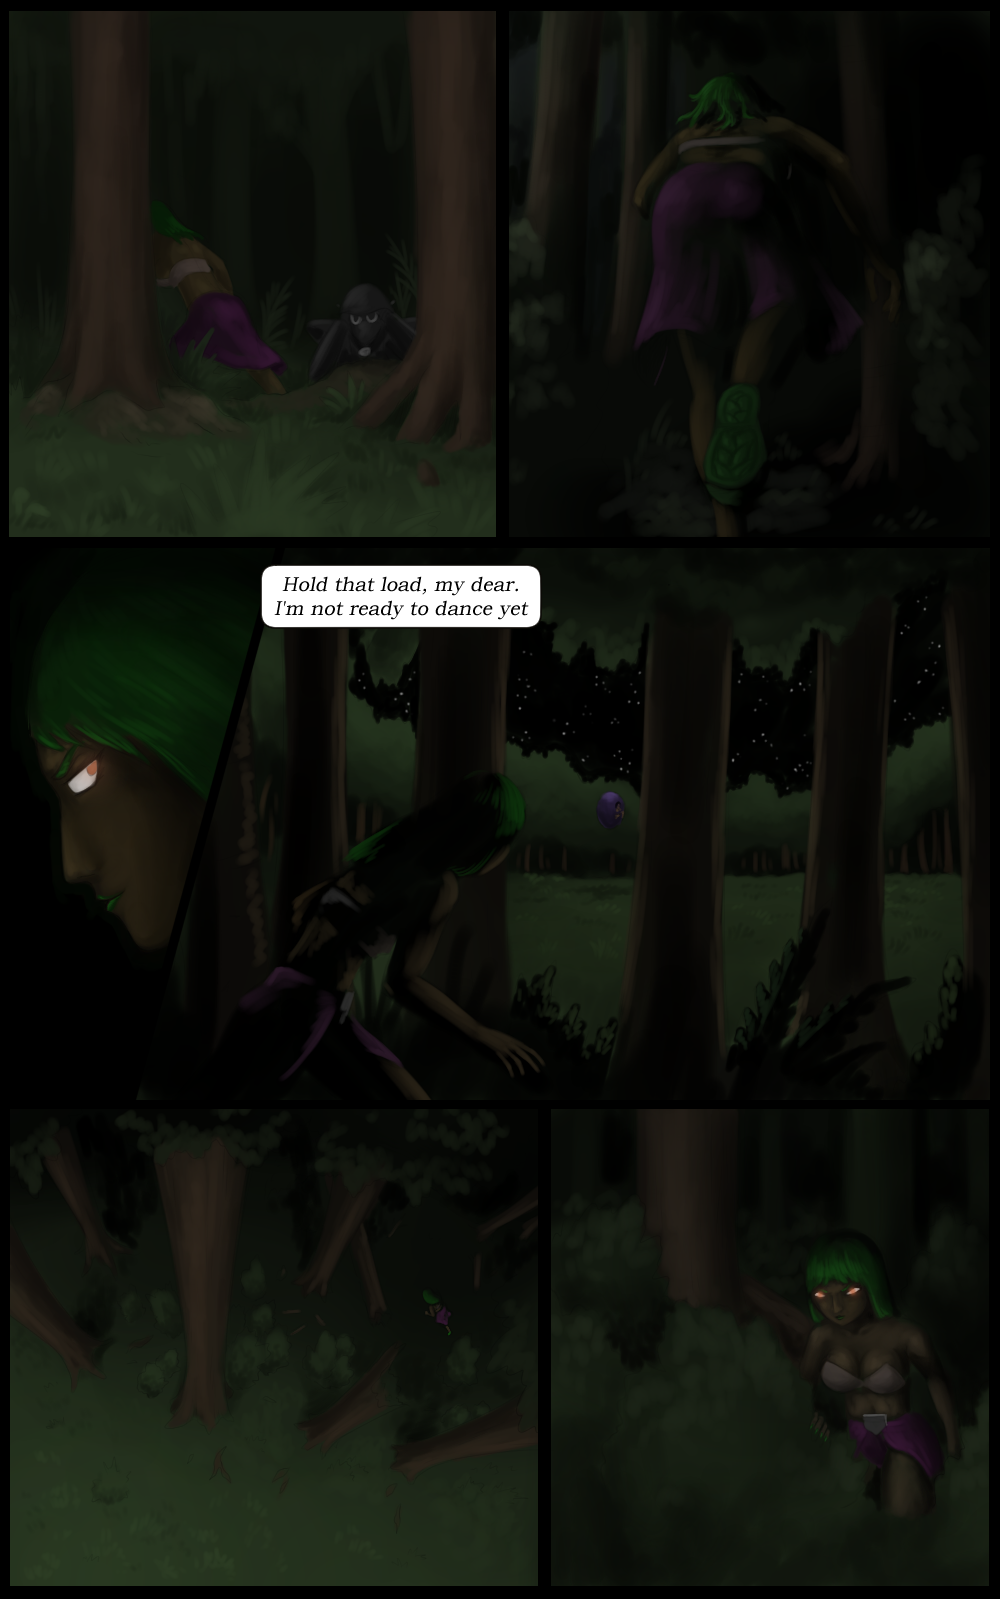 Page 48 - Preparing for the dance (Part 1)